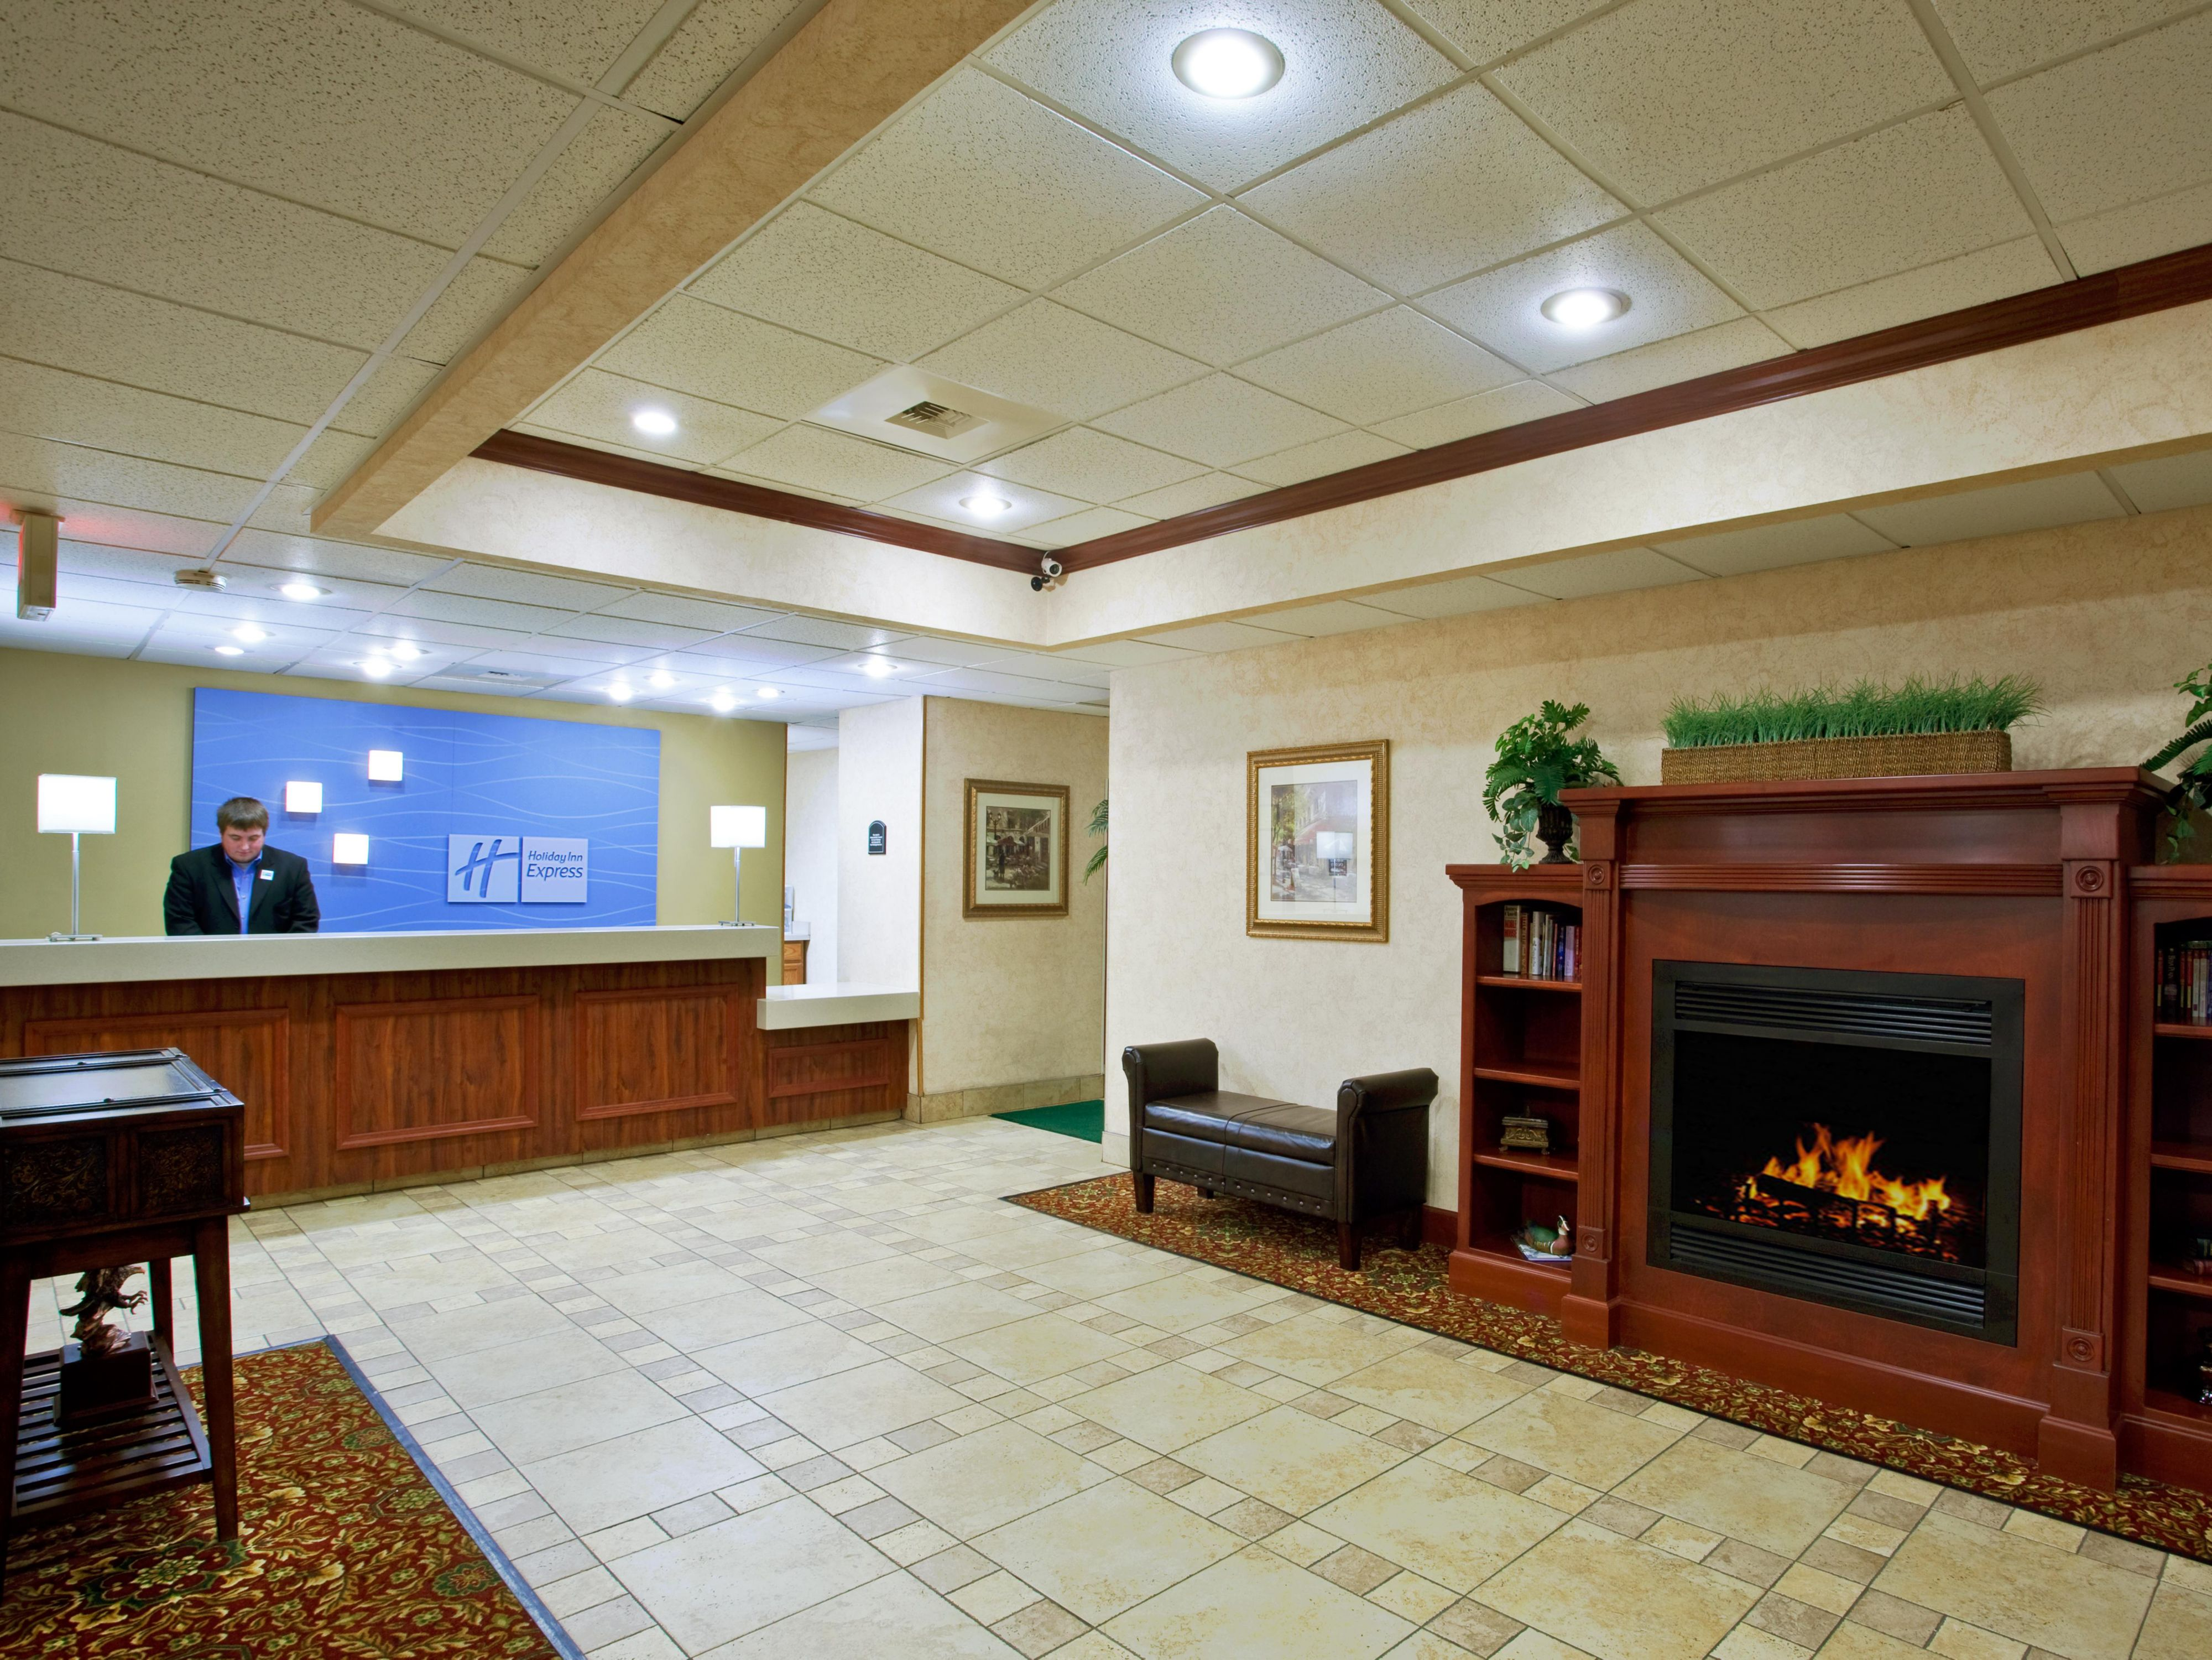 We welcome you to Holiday Inn Express Huber Heights, OH